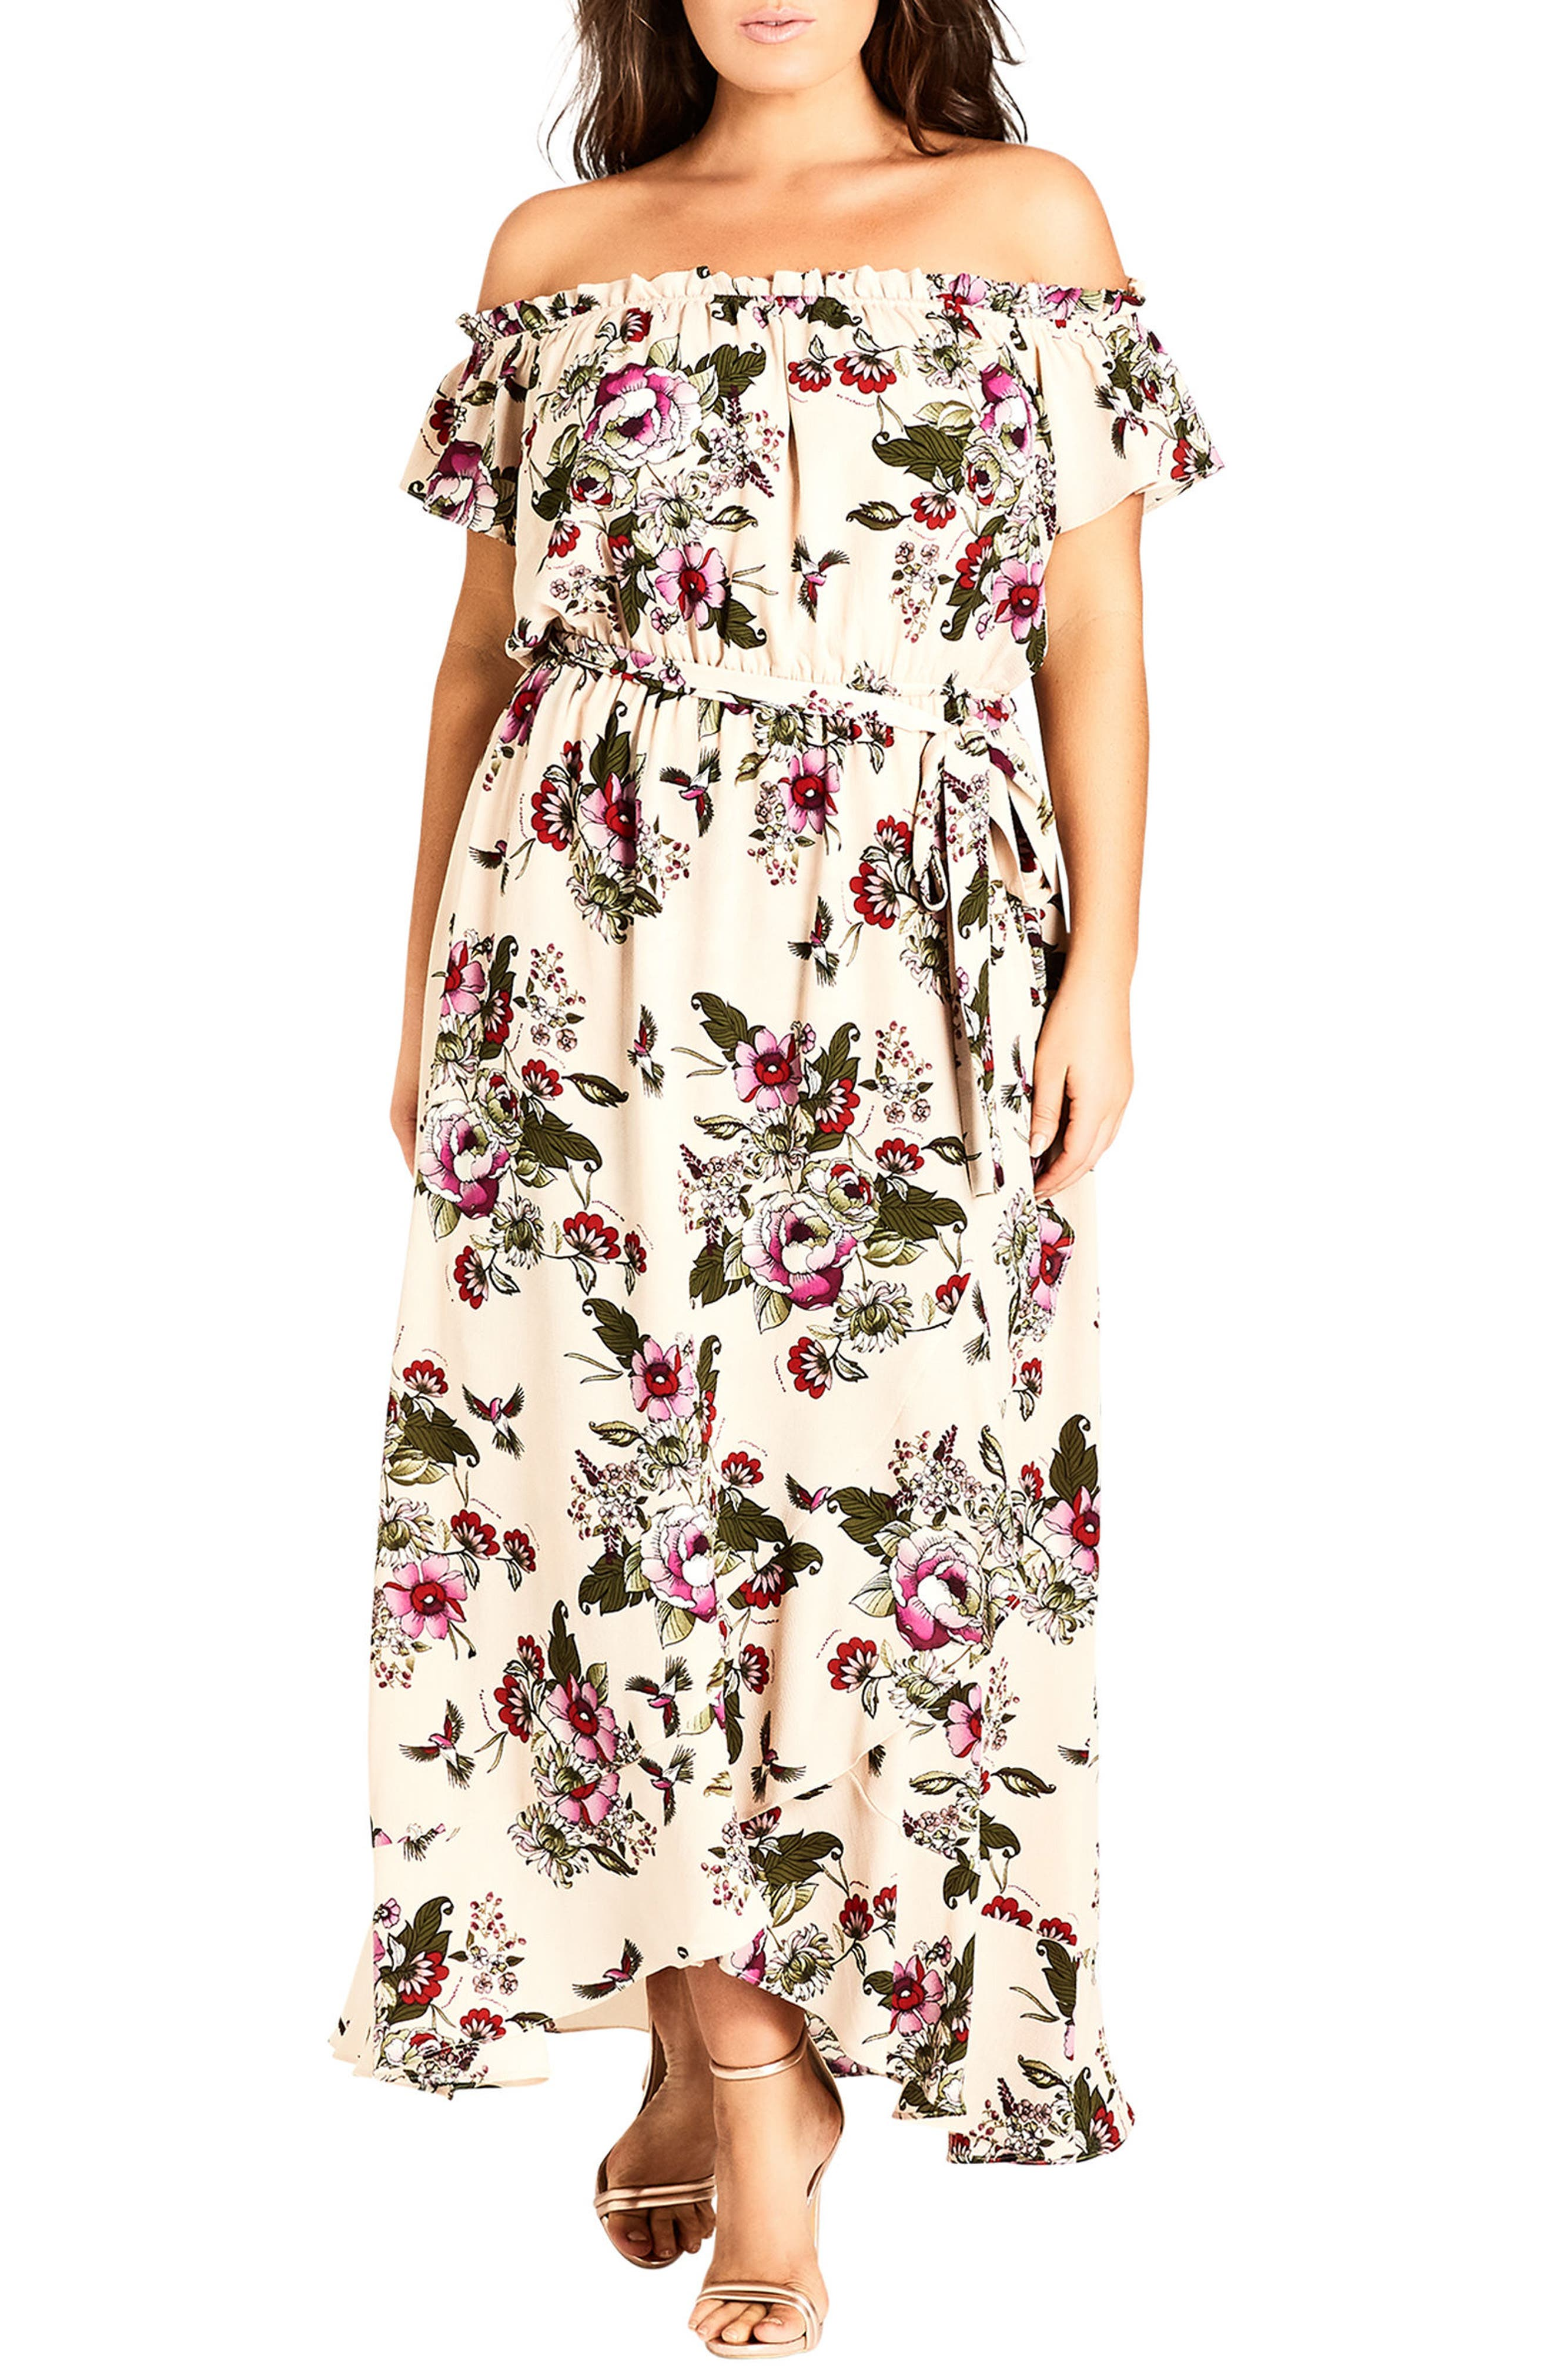 Alternate Image 1 Selected - City Chic Lolita Floral Off the Shoulder Maxi Dress (Plus Size)